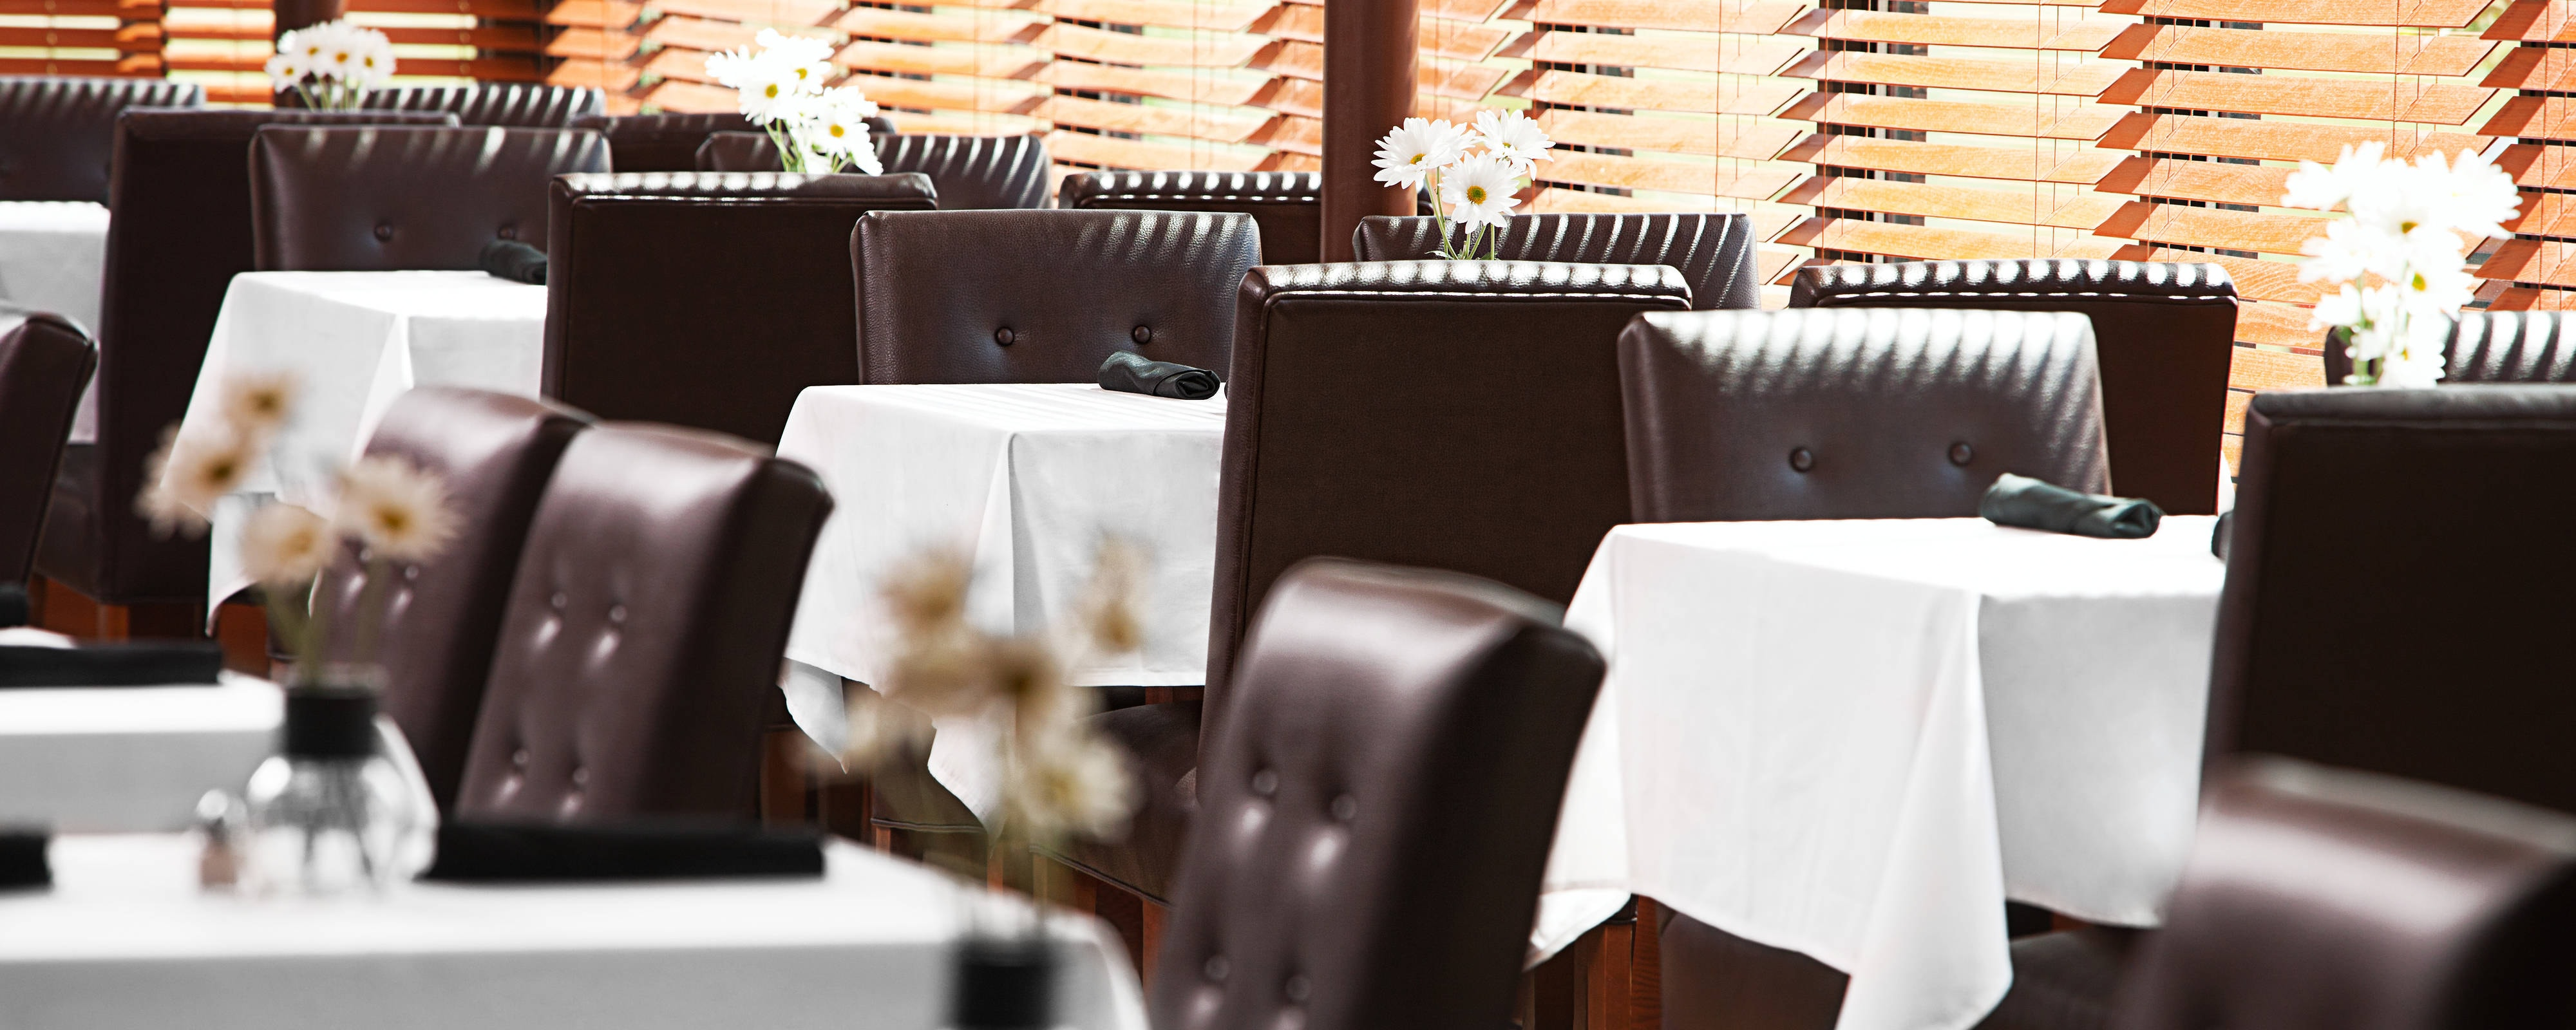 Richfield Mn Hotel With Restaurant Four Points By